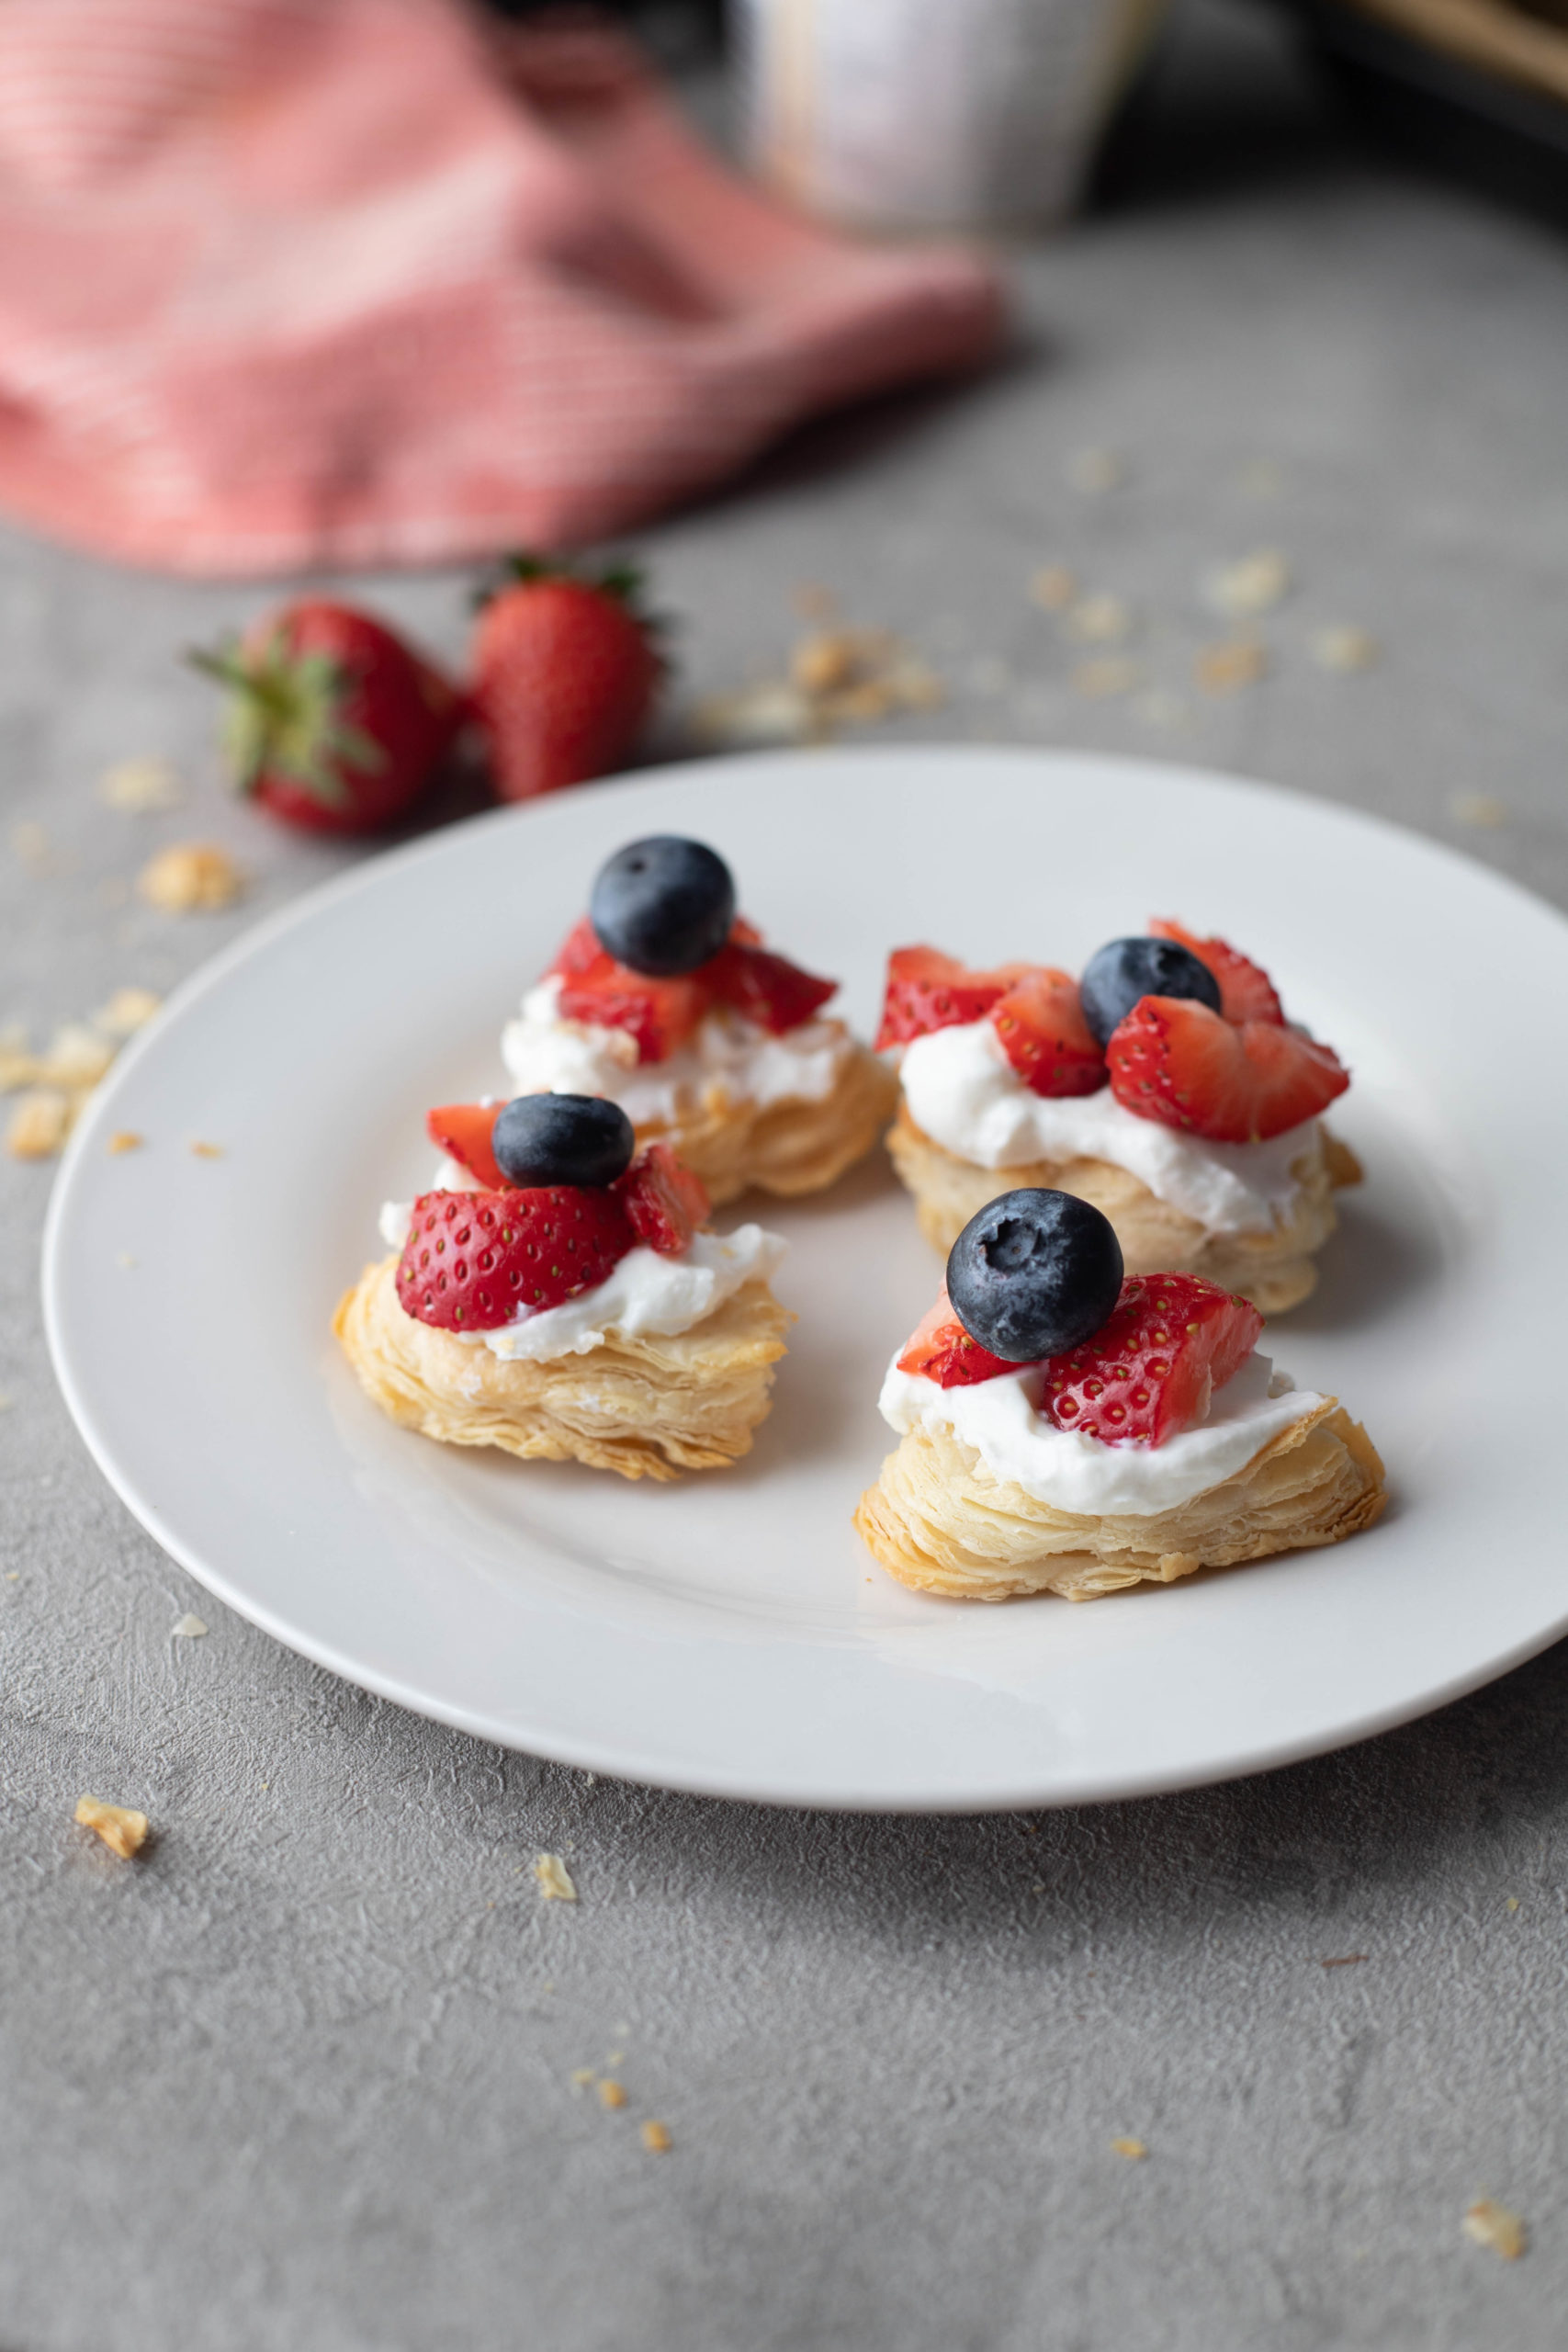 strawberry Puff pastry bites served with cream and berries